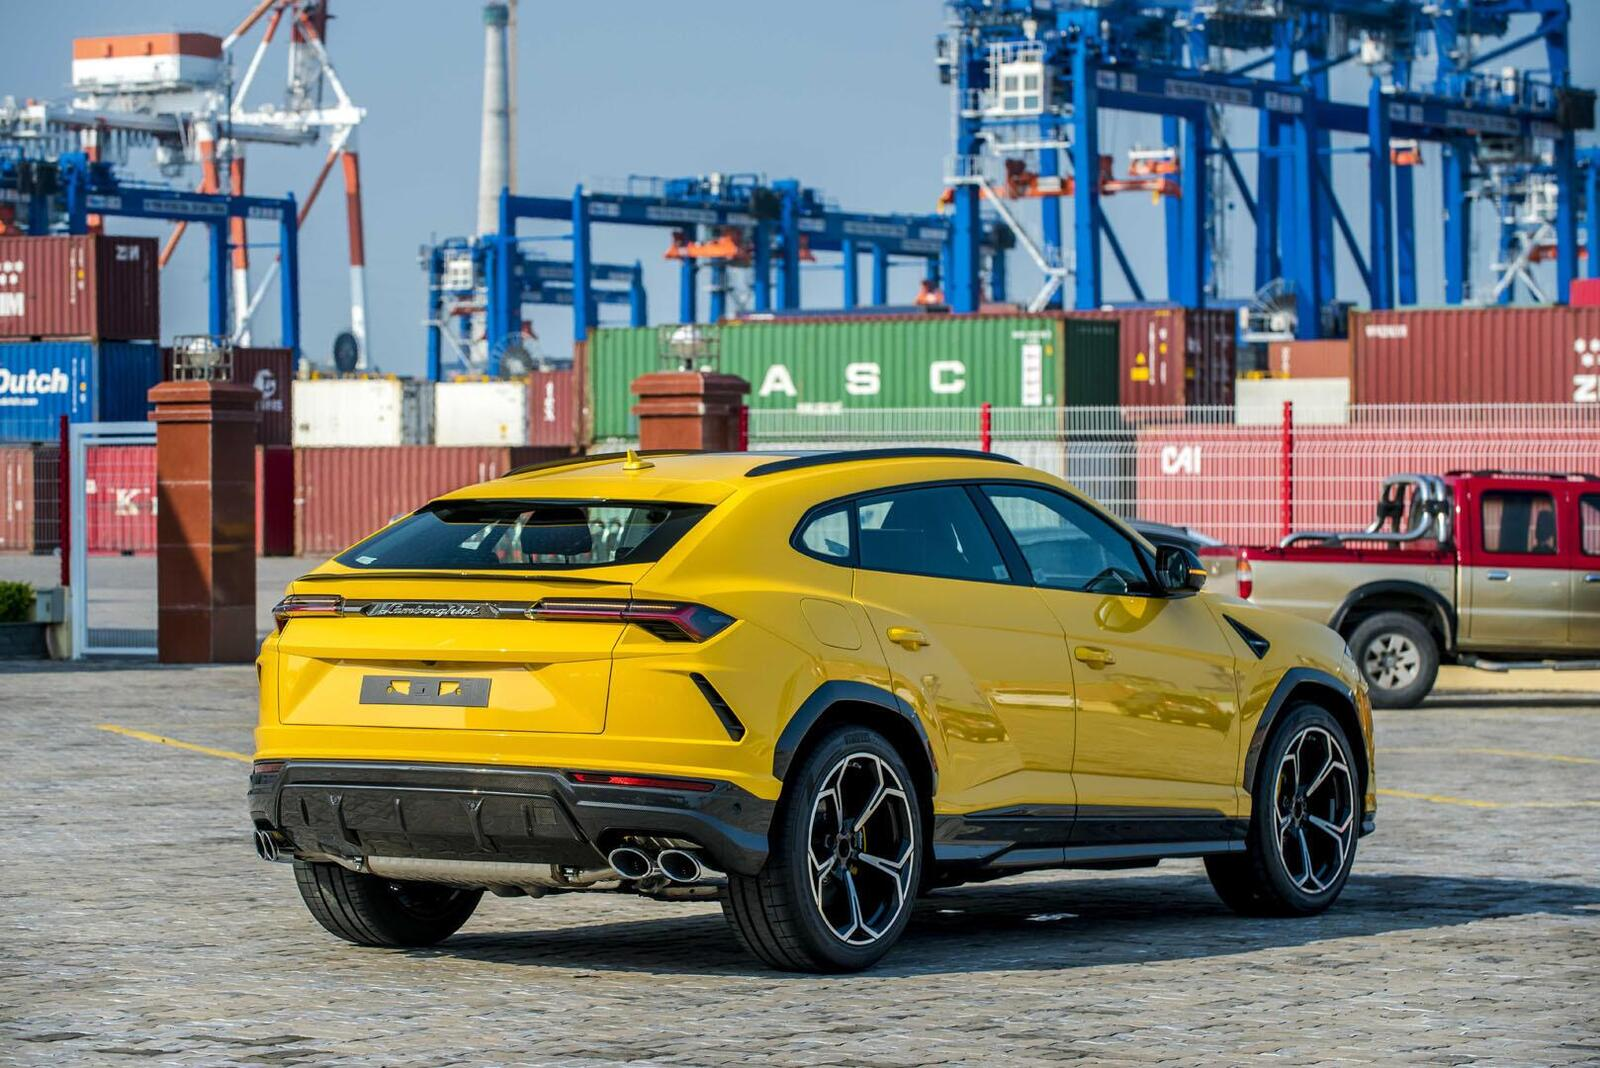 https://cdn.dailyxe.com.vn/image/can-canh-lamborghini-urus-thu-4-ve-viet-nam-mau-noi-that-gay-choang-17-81364j2.jpg?1568181230389